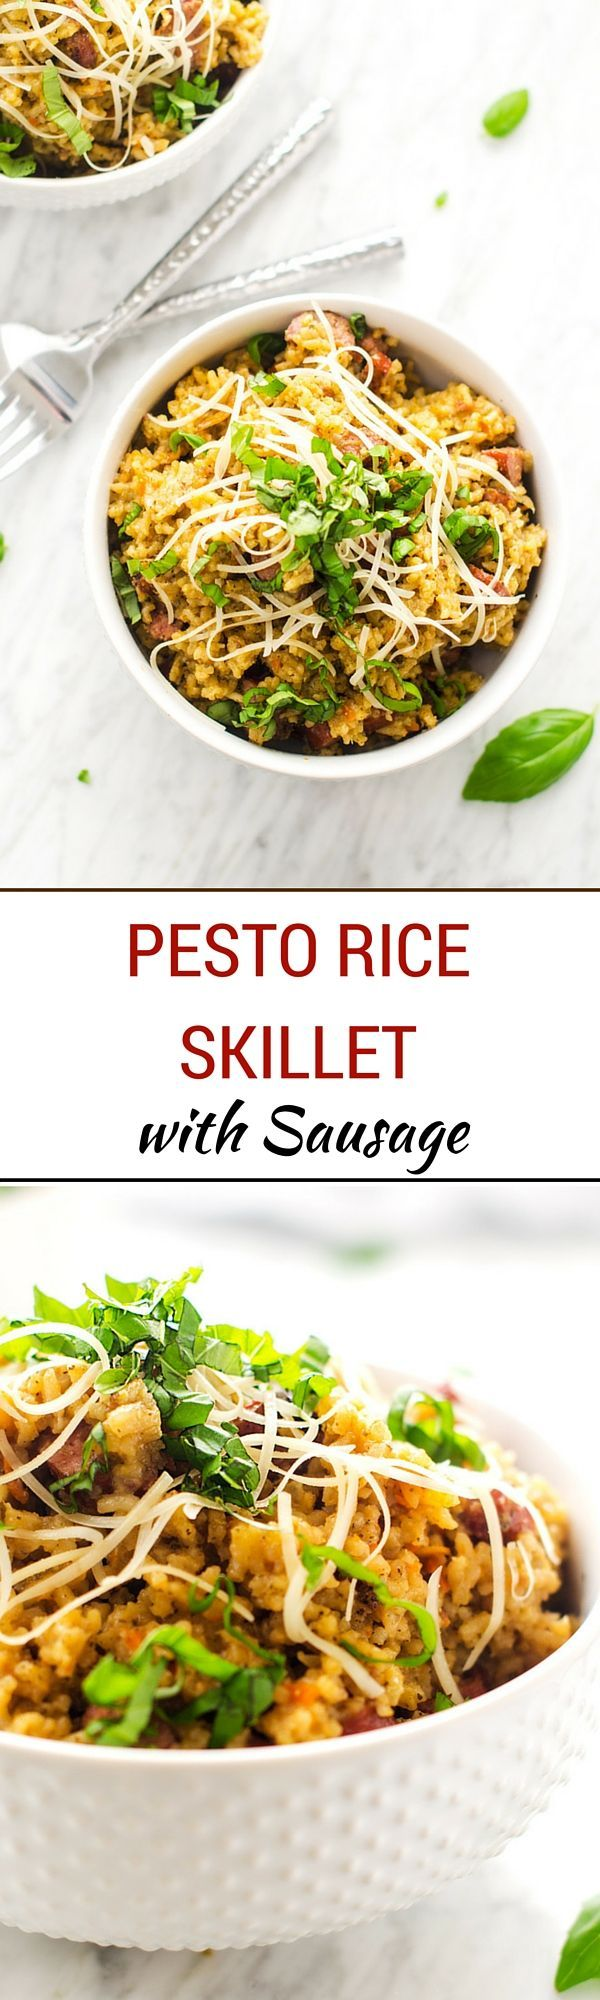 Pesto Rice Skillet with Sausage - This easy to make family dinner is ...